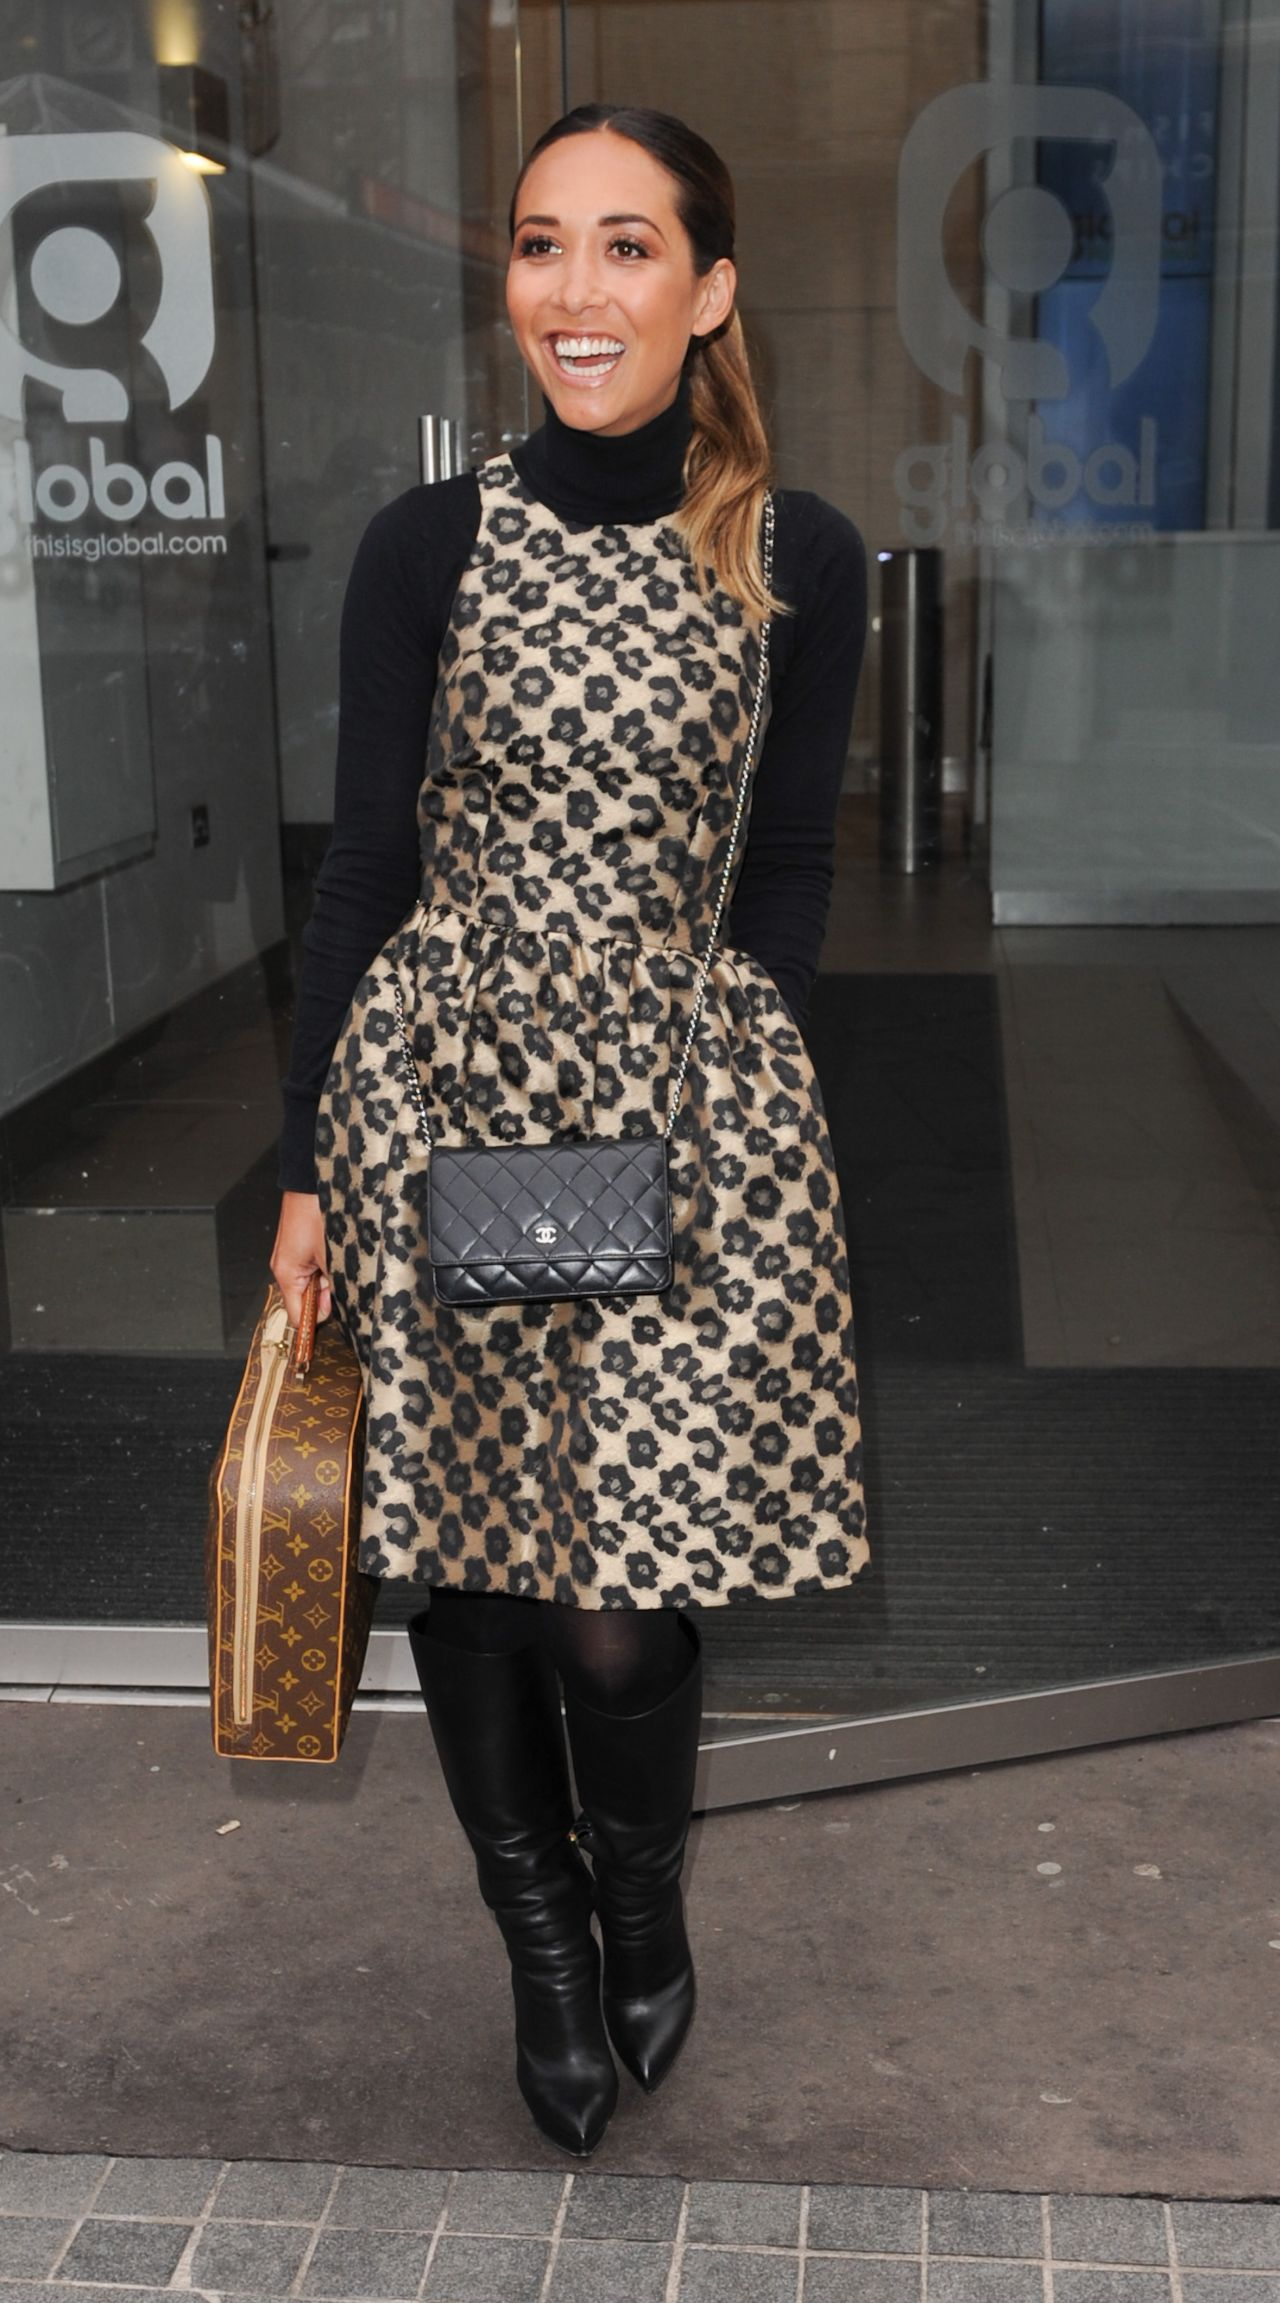 Myleene Klass Style At Capital Radio Studios In London